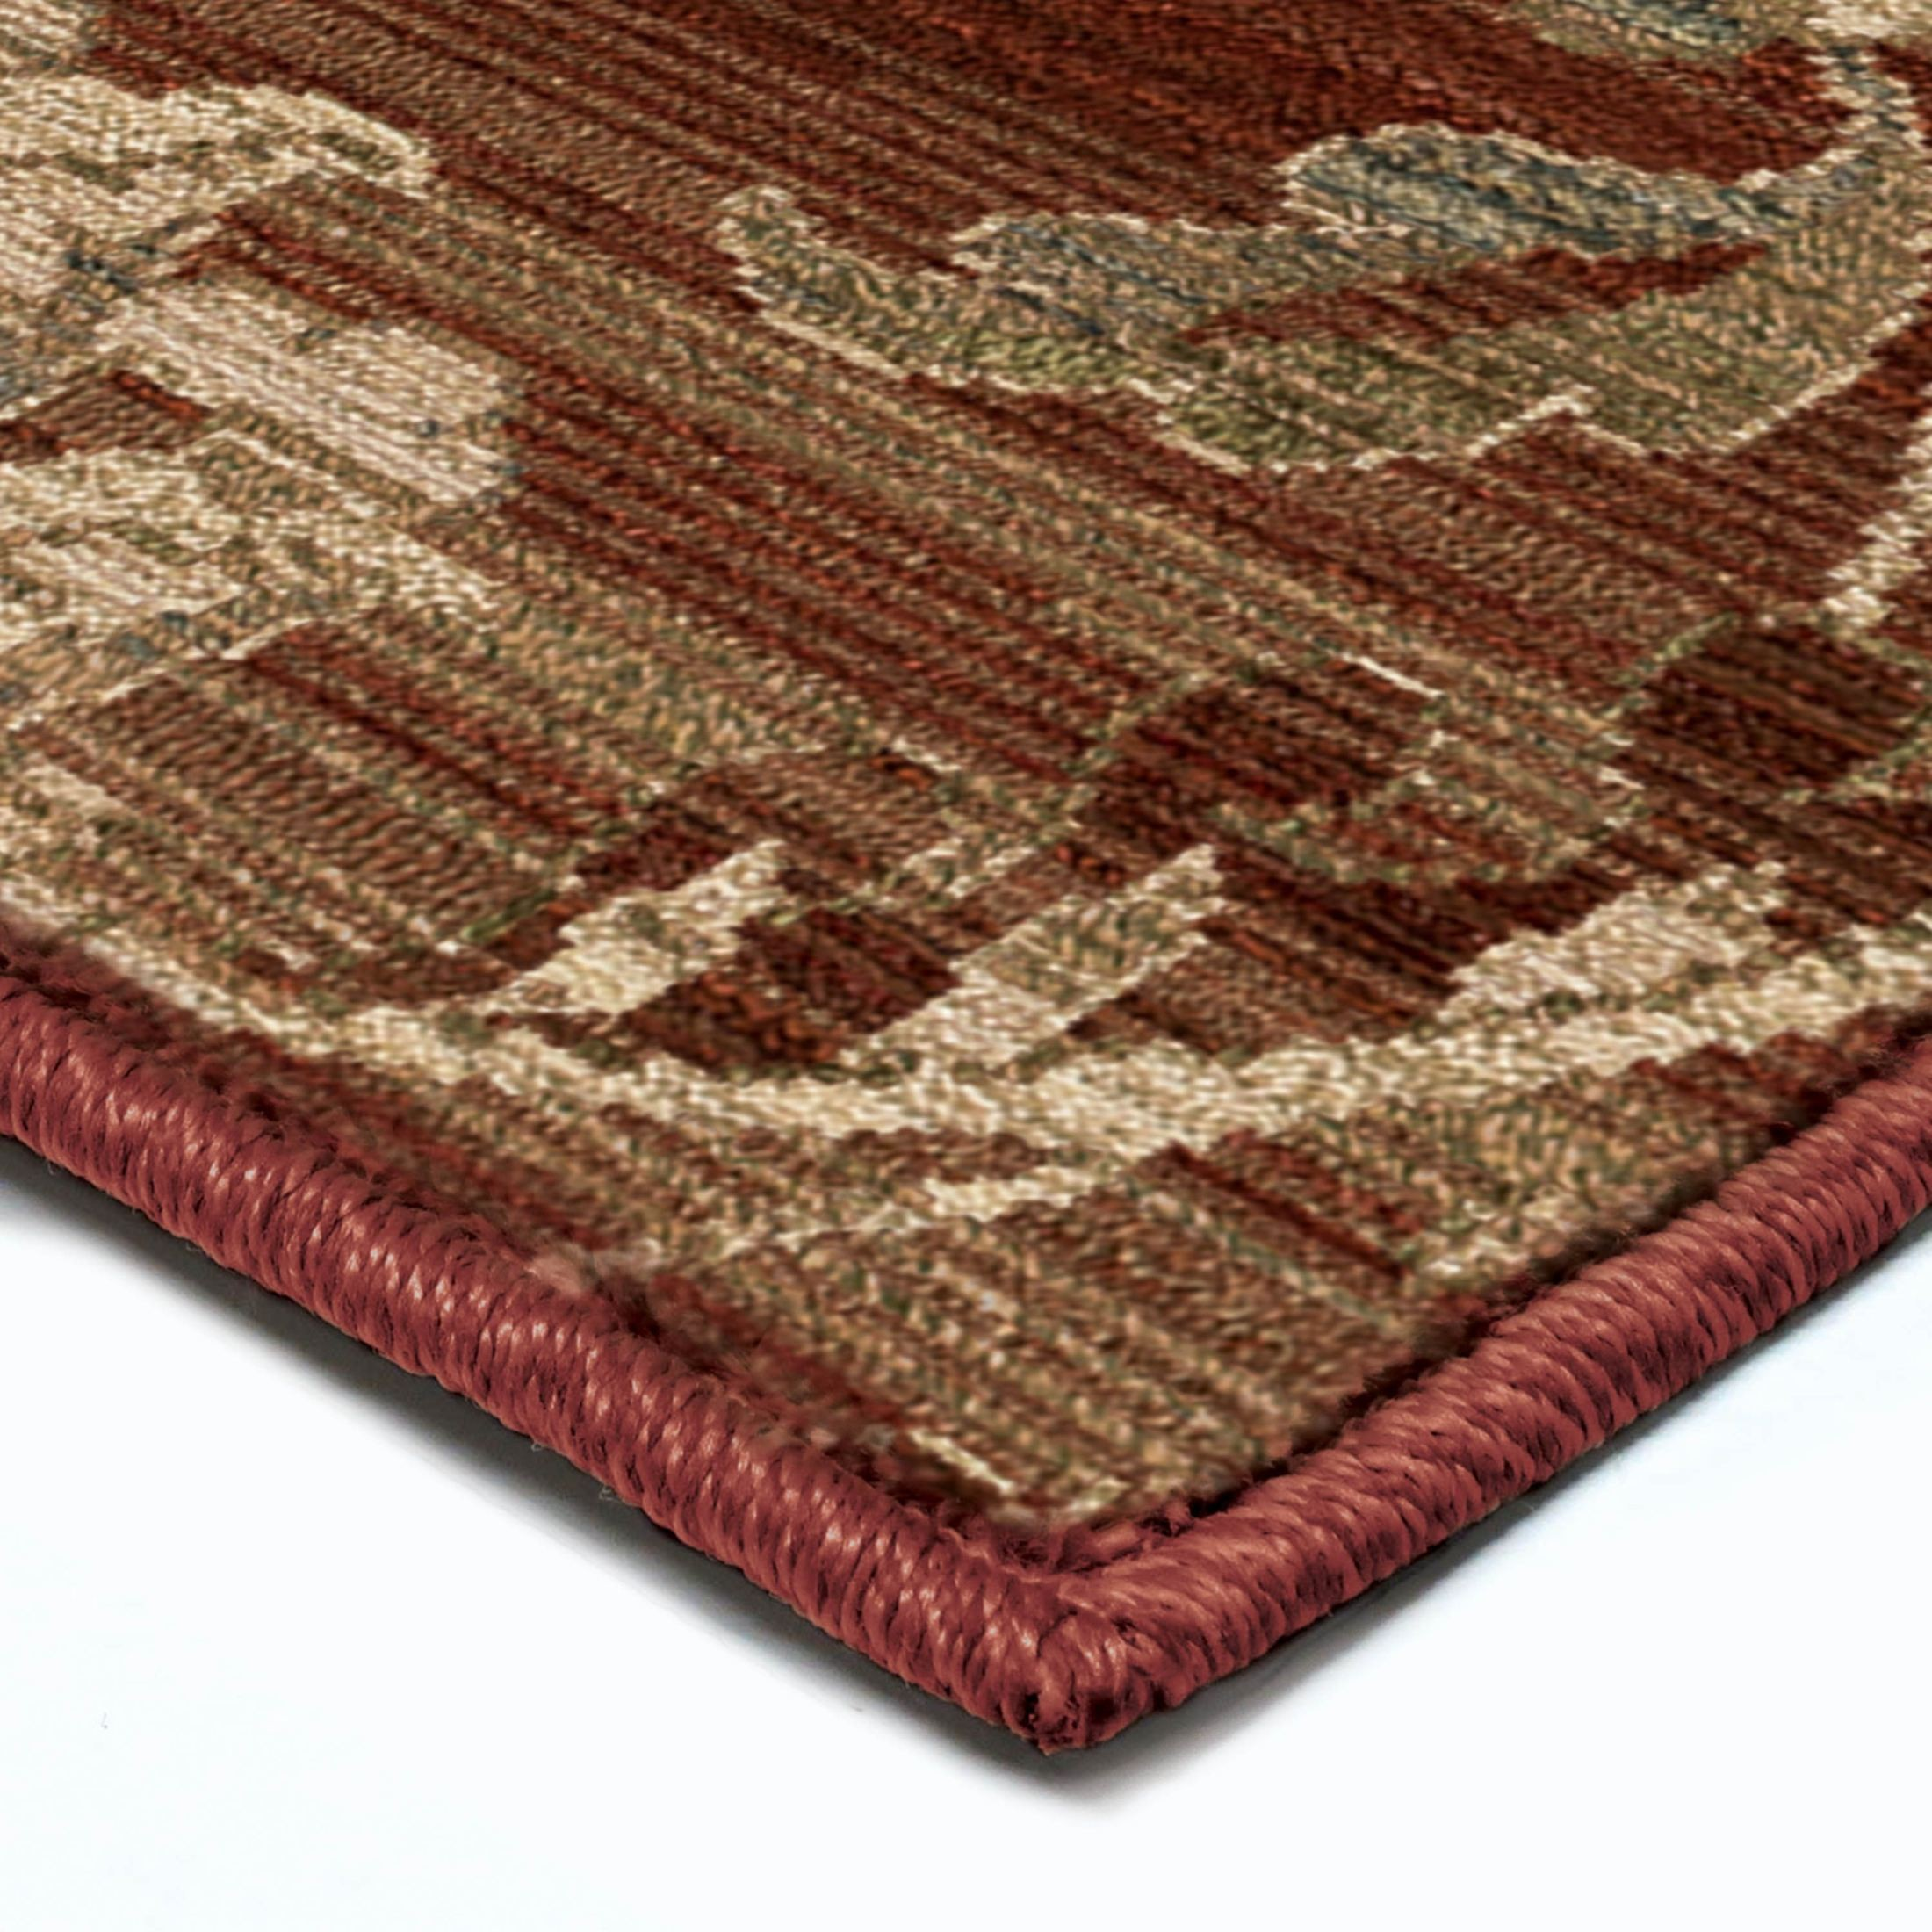 Orian rugs unique designs leaves cae red area extra large for Large red area rugs